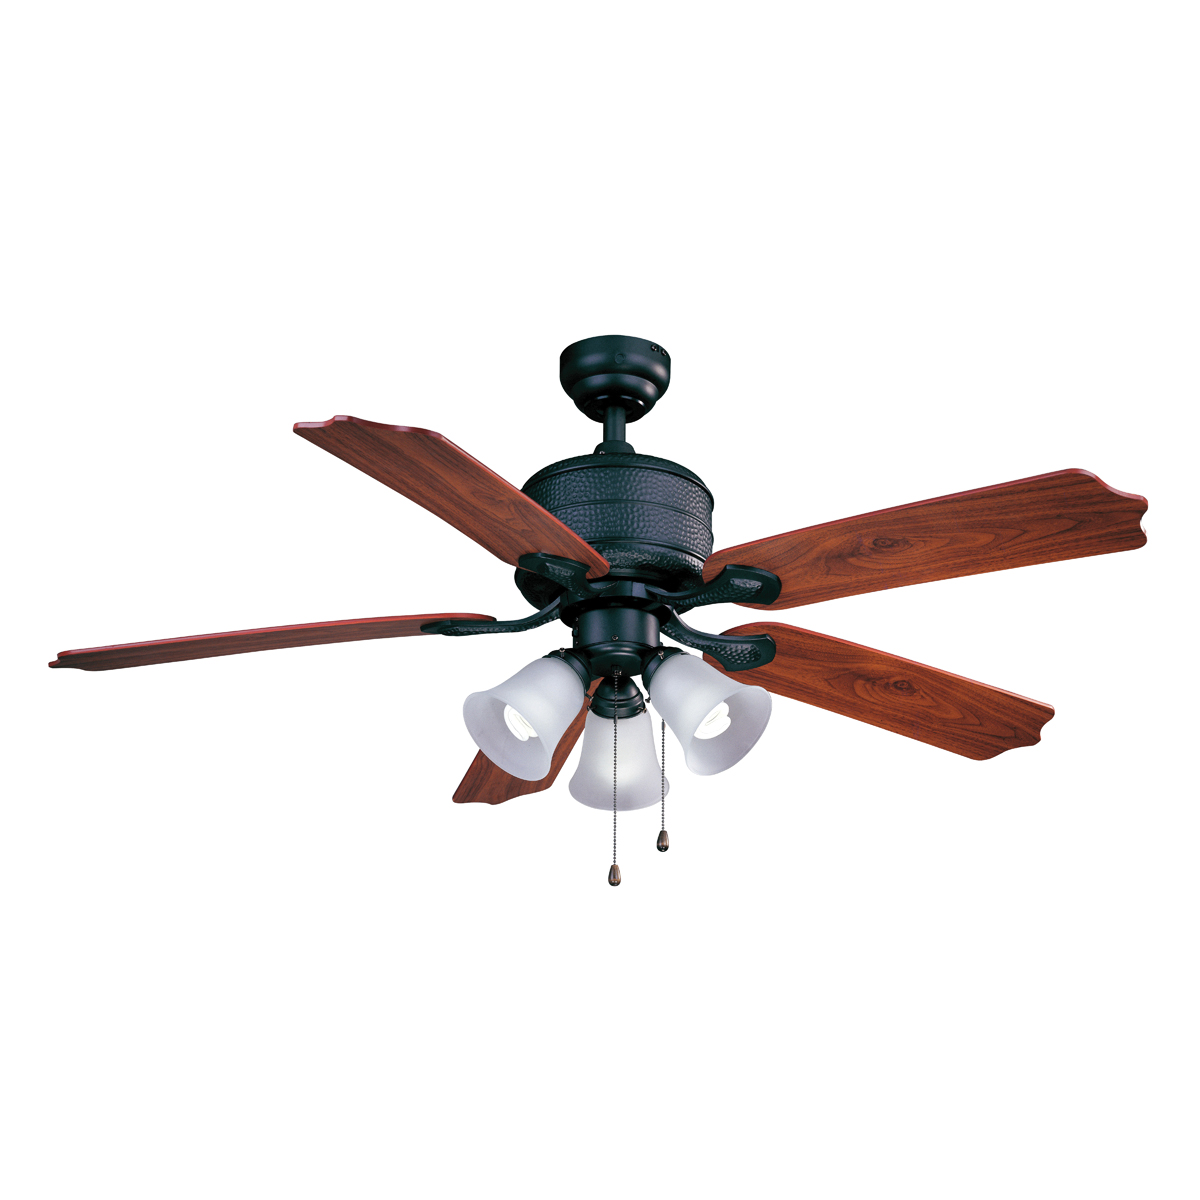 Picture of Boston Harbor AC362+3L-NI-3L Ceiling Fan, 120 V, 5-Blade, 52 in Sweep